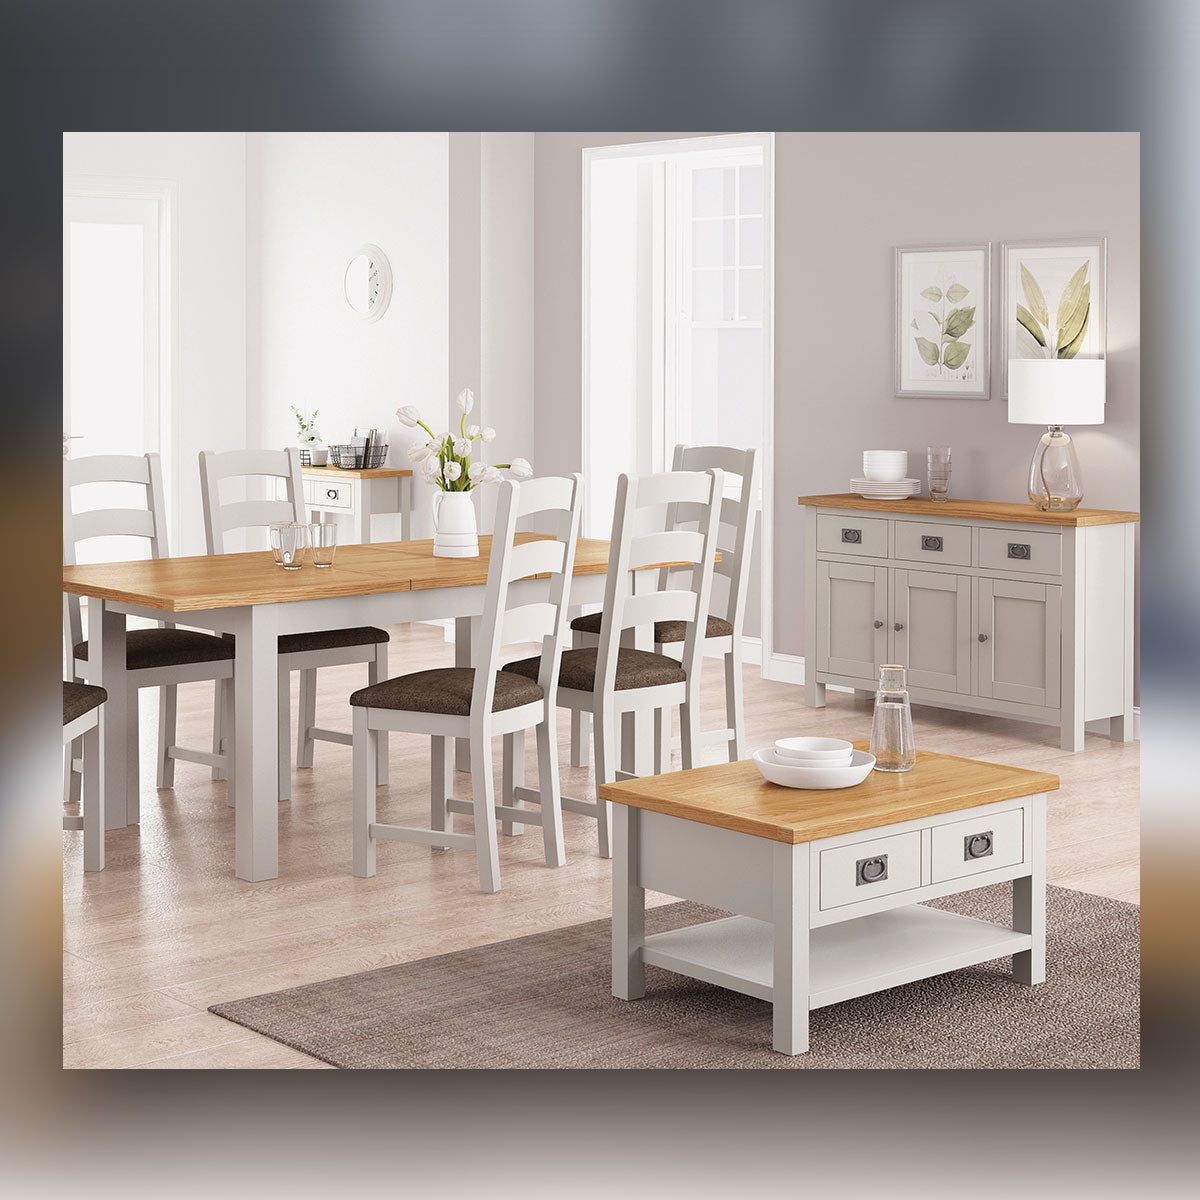 Devon Painted Oak Compact Extending Dining Table